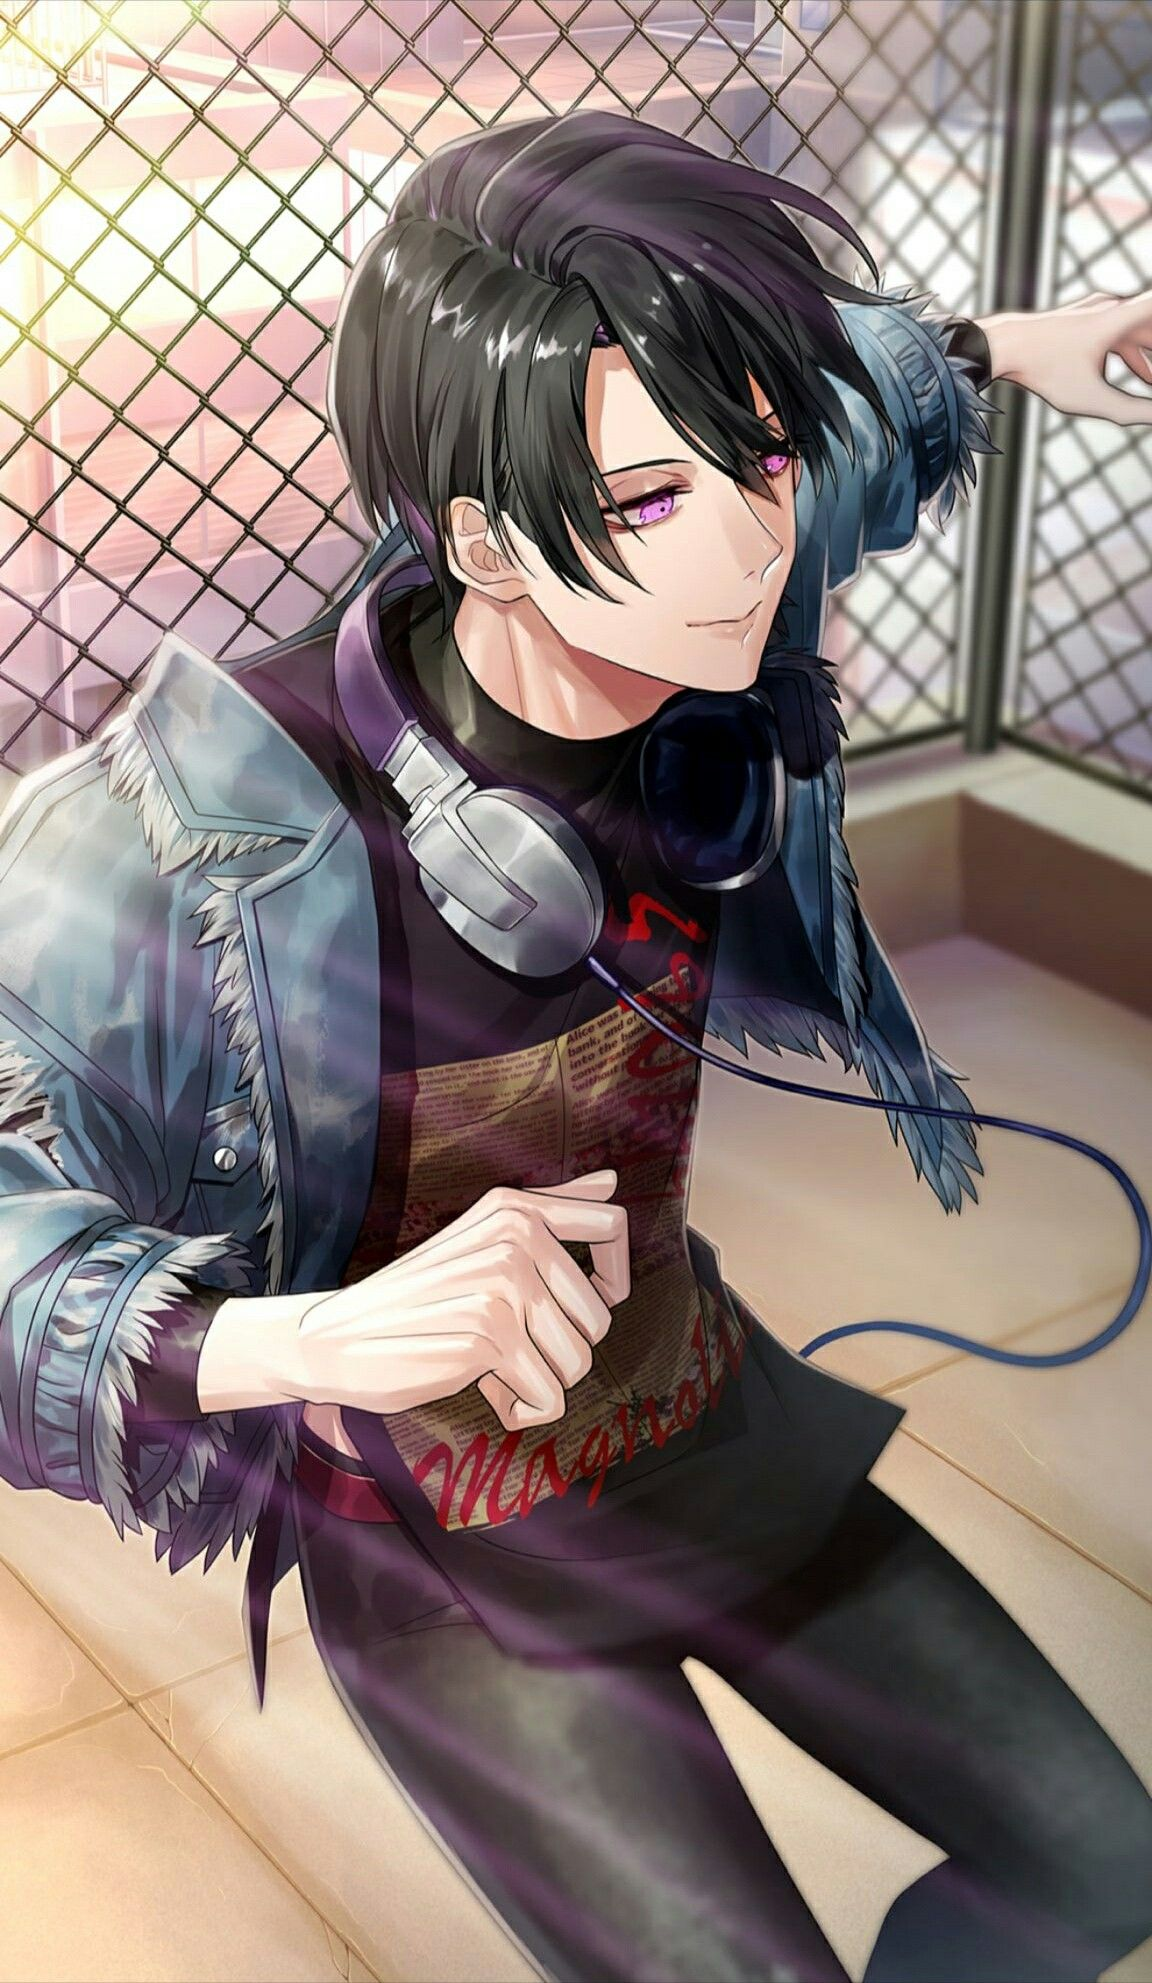 Pin By Belen Canales On Blackstar Theater Starless Black Haired Anime Boy Anime Boy Hair Handsome Anime